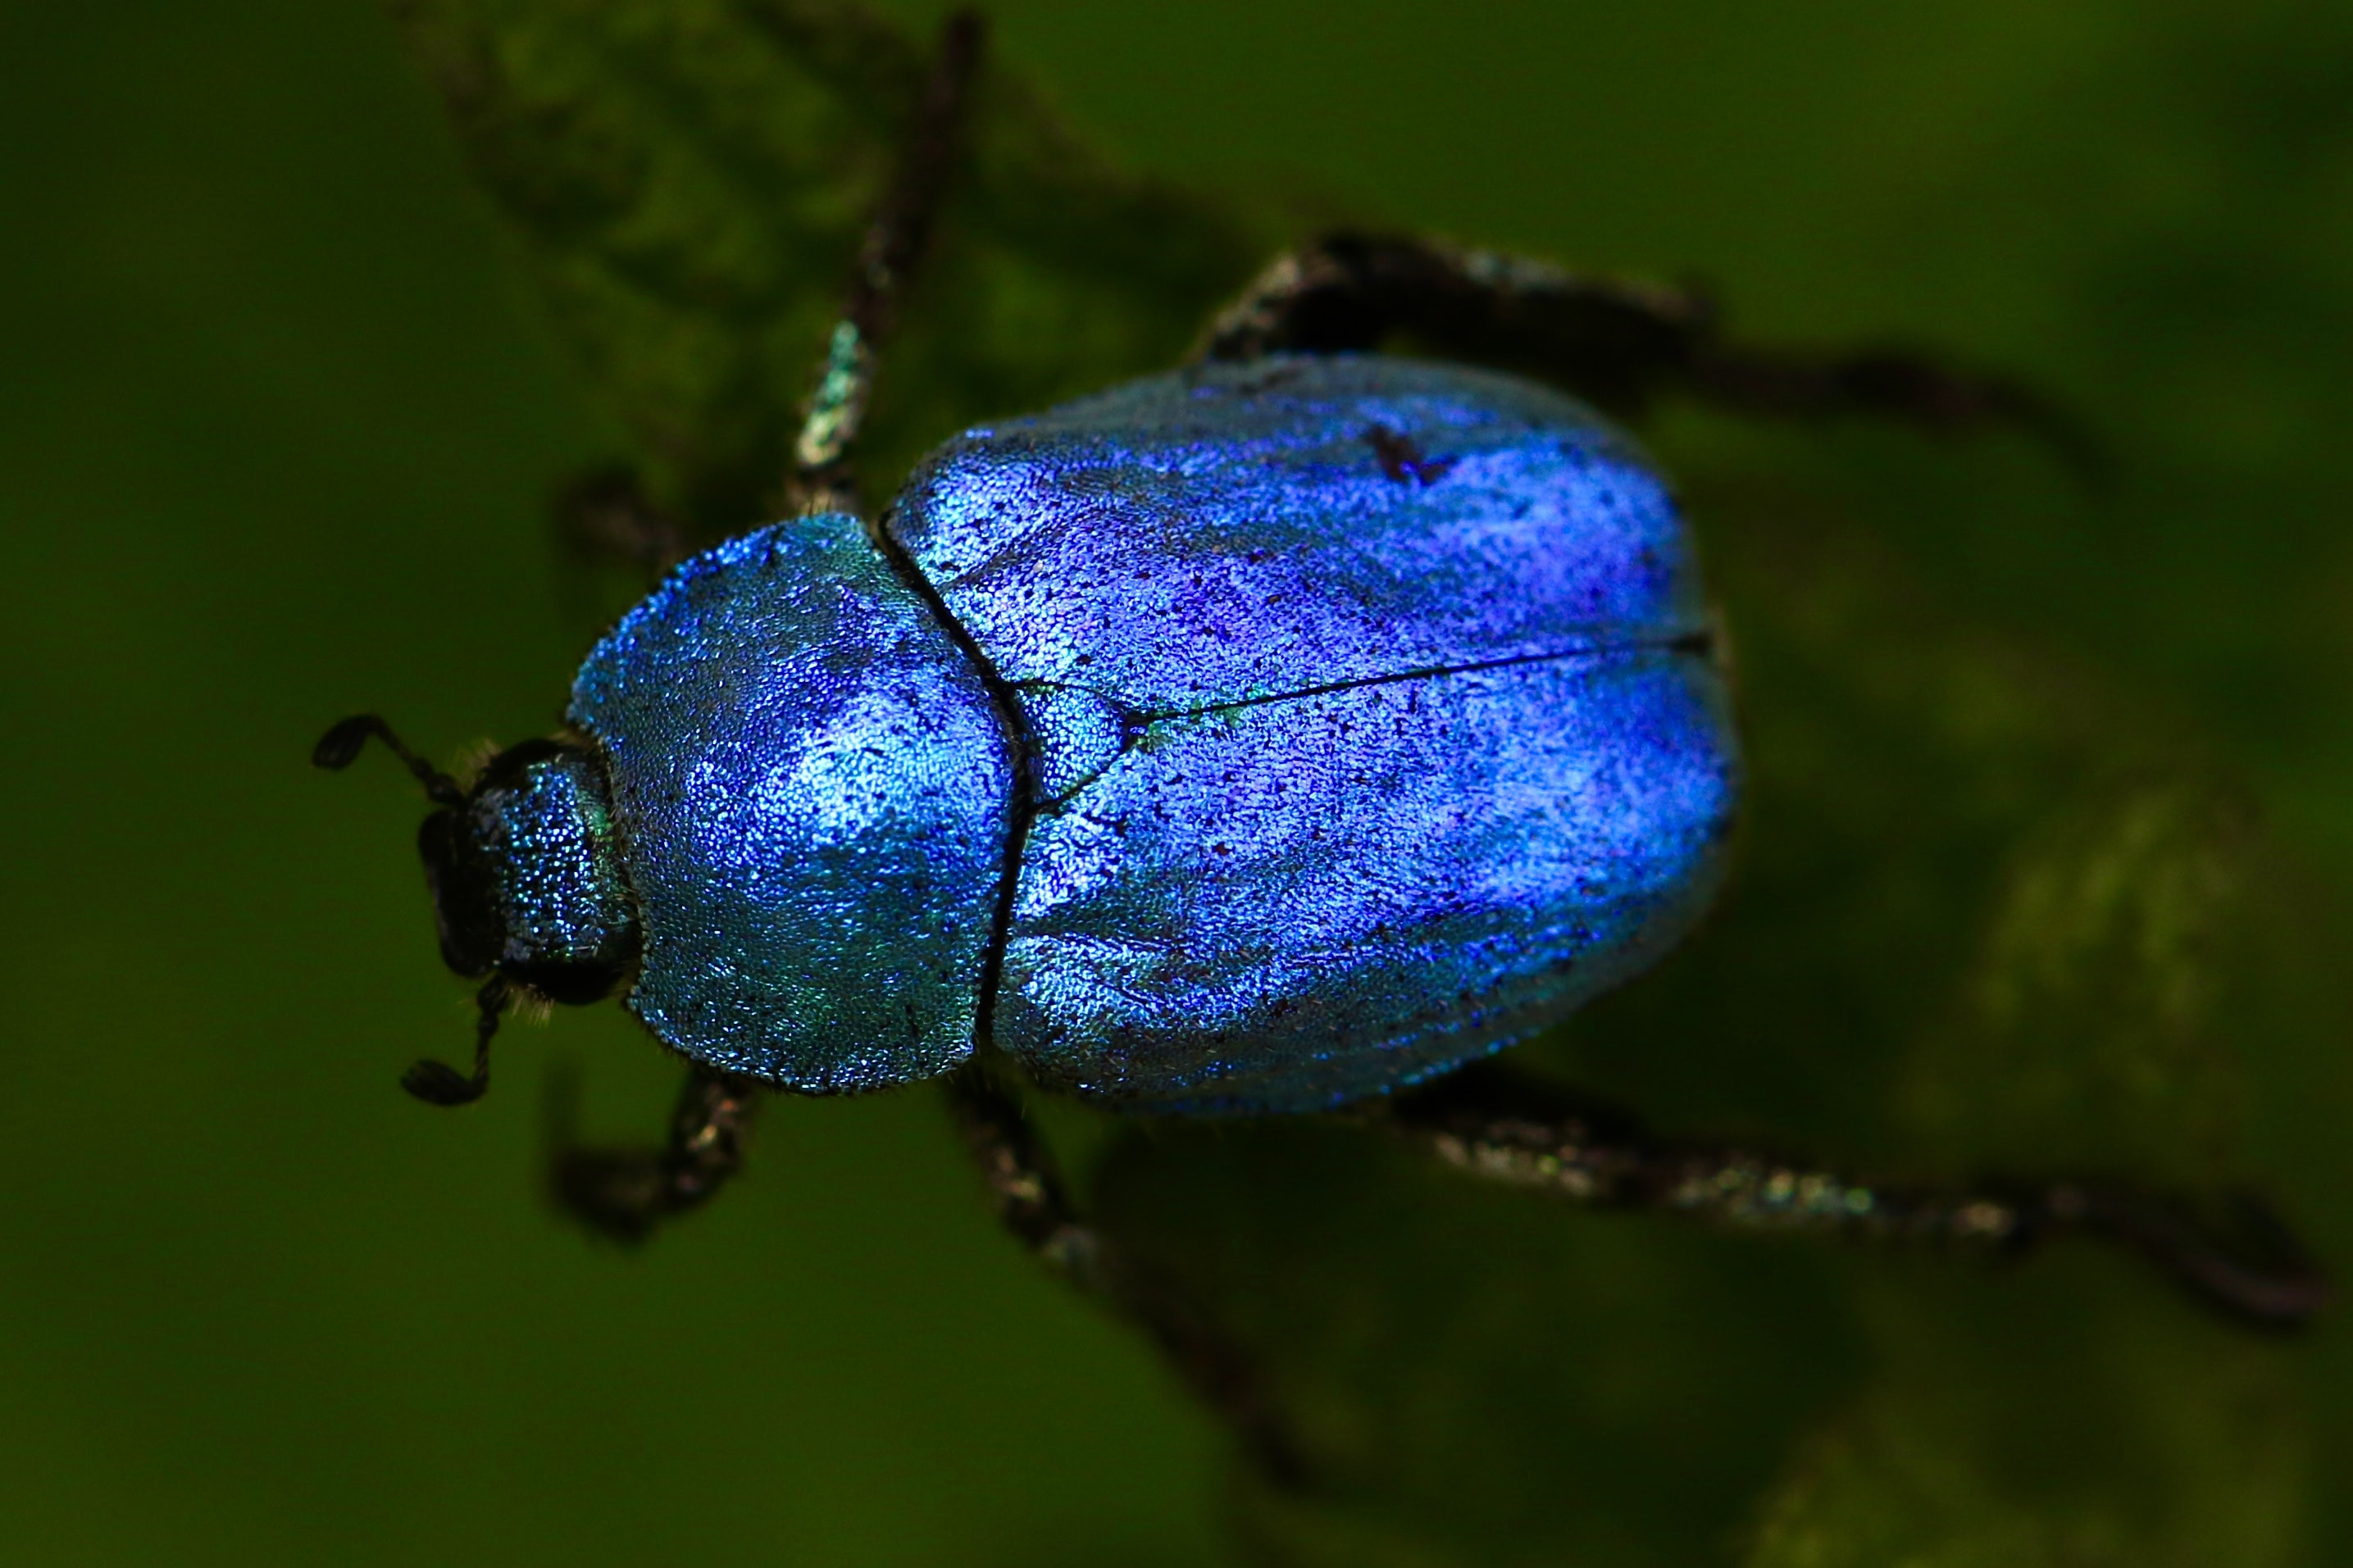 macro shot of blue beetle